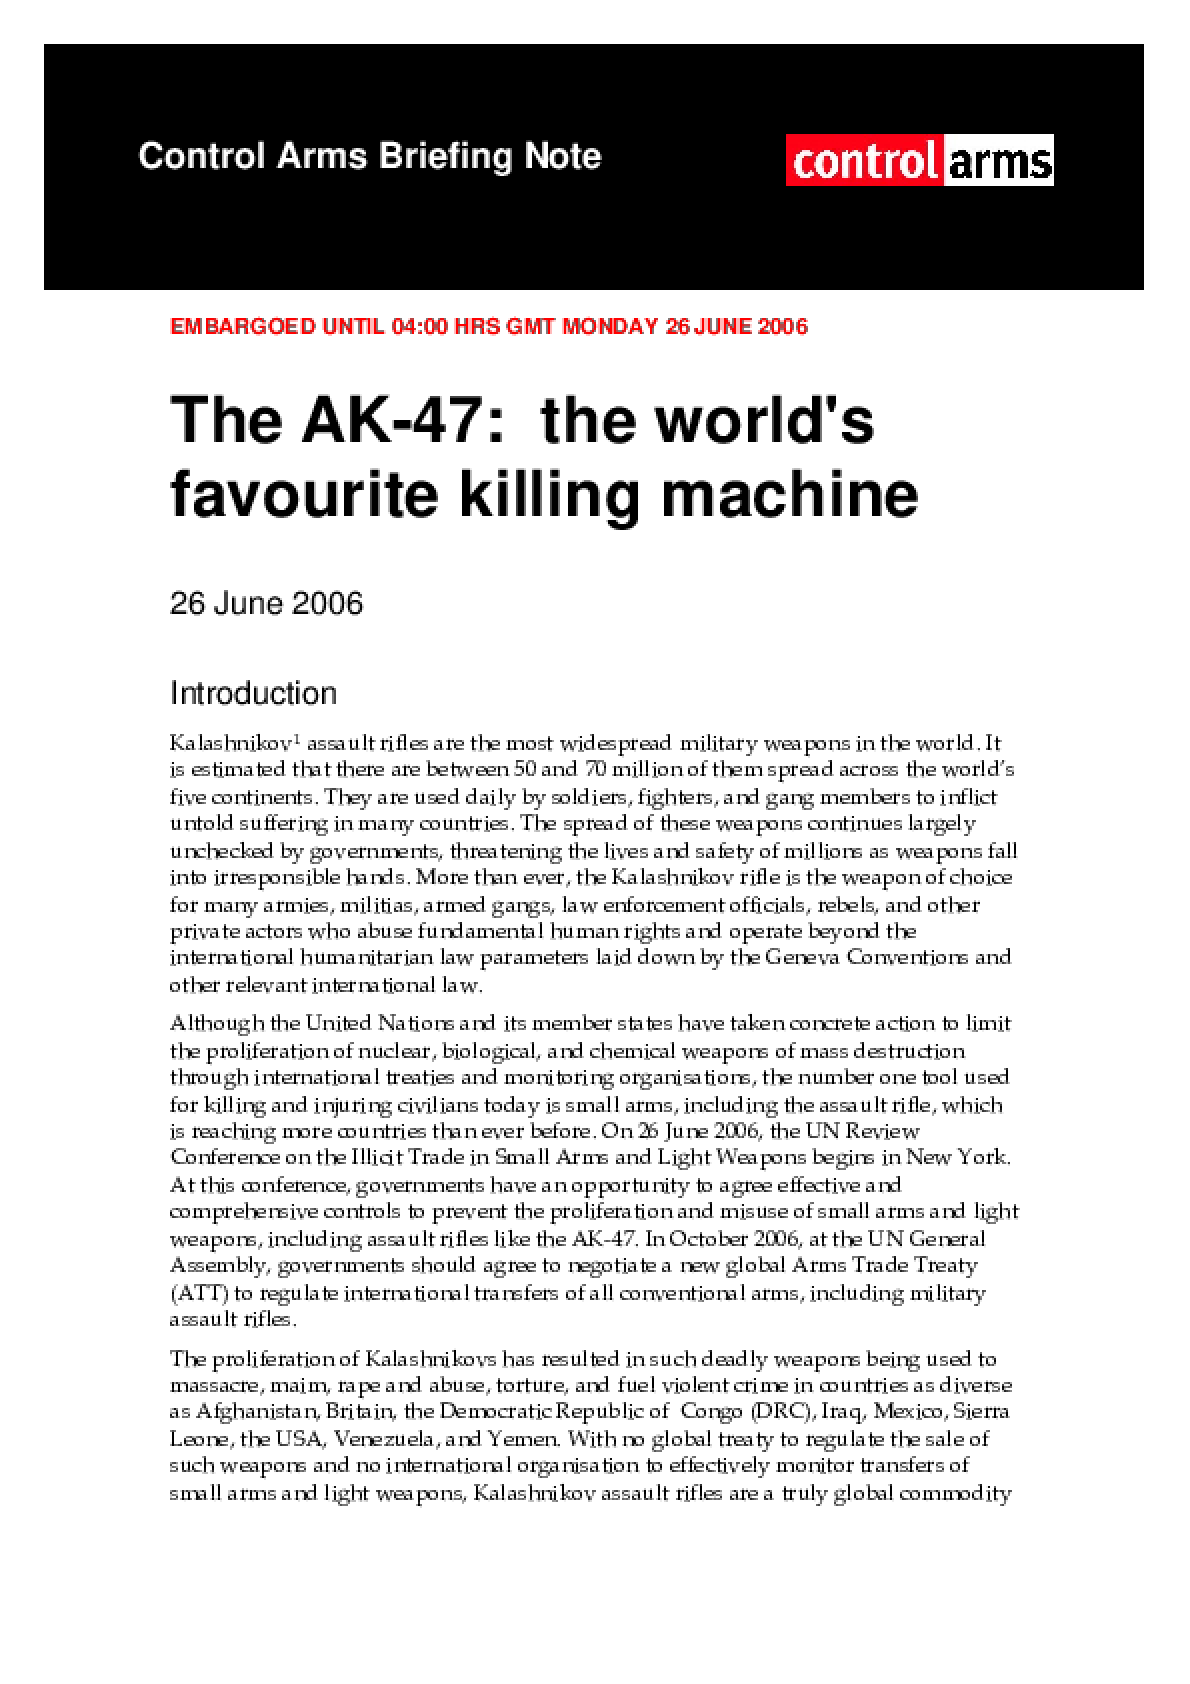 The AK47: The world's favourite killing machine